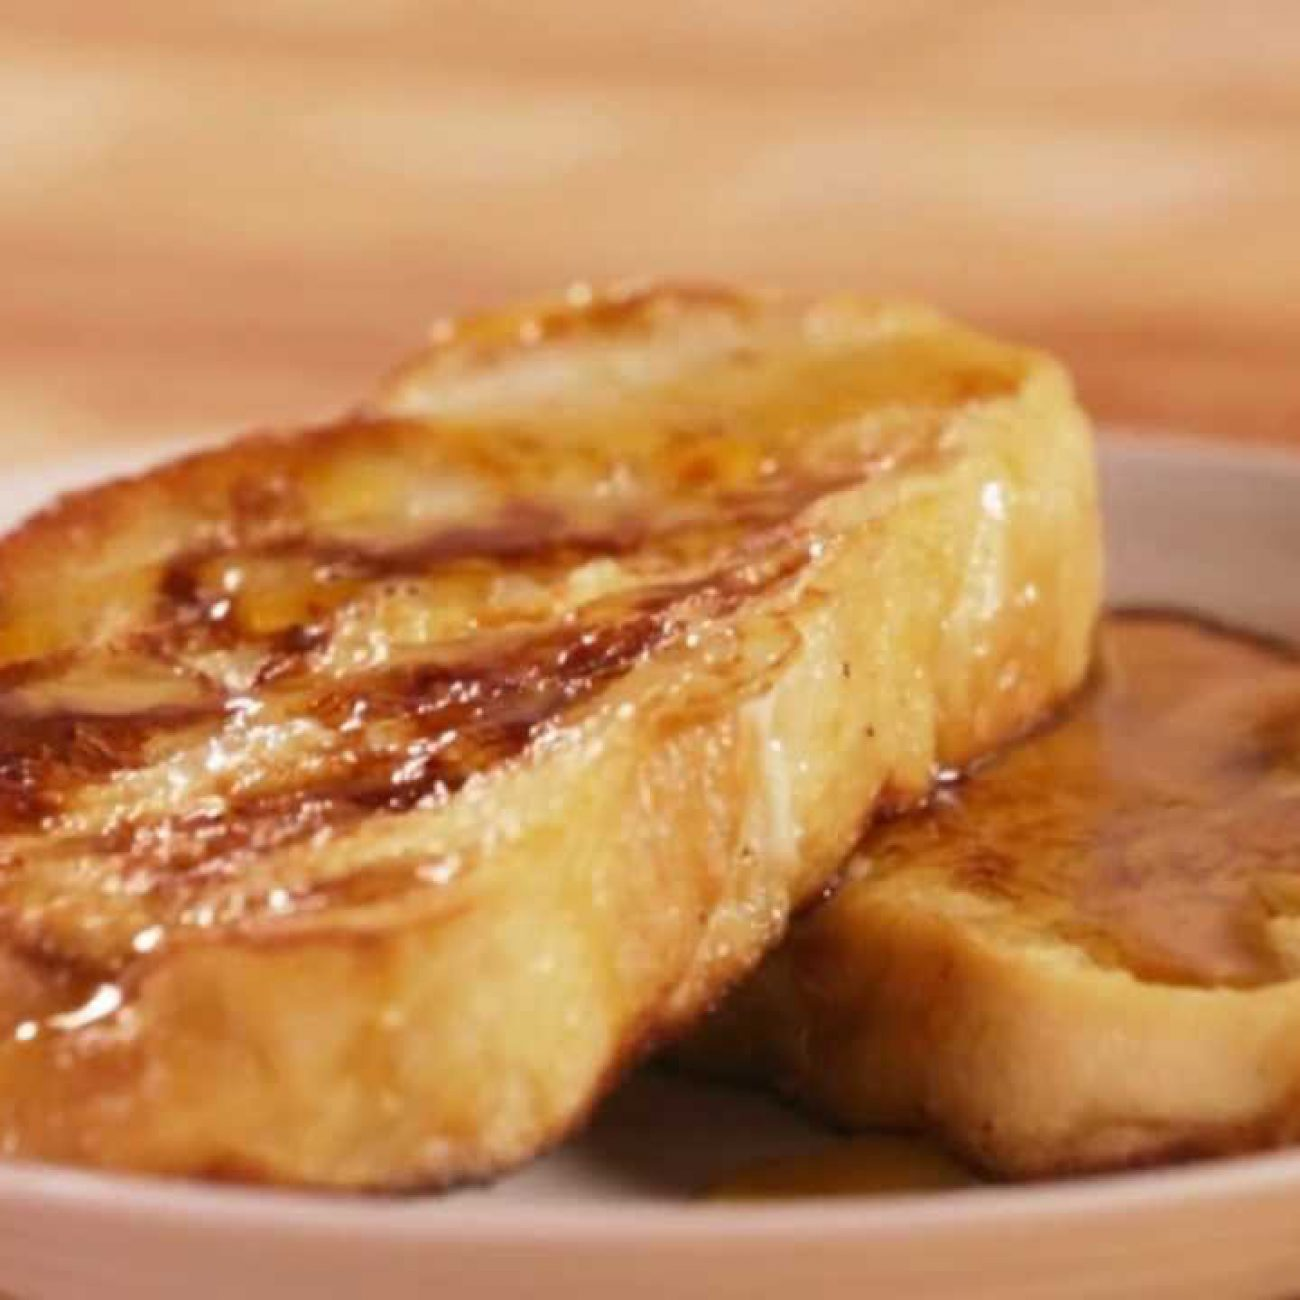 Easy Breakfast Recipe – How to Make French Toast